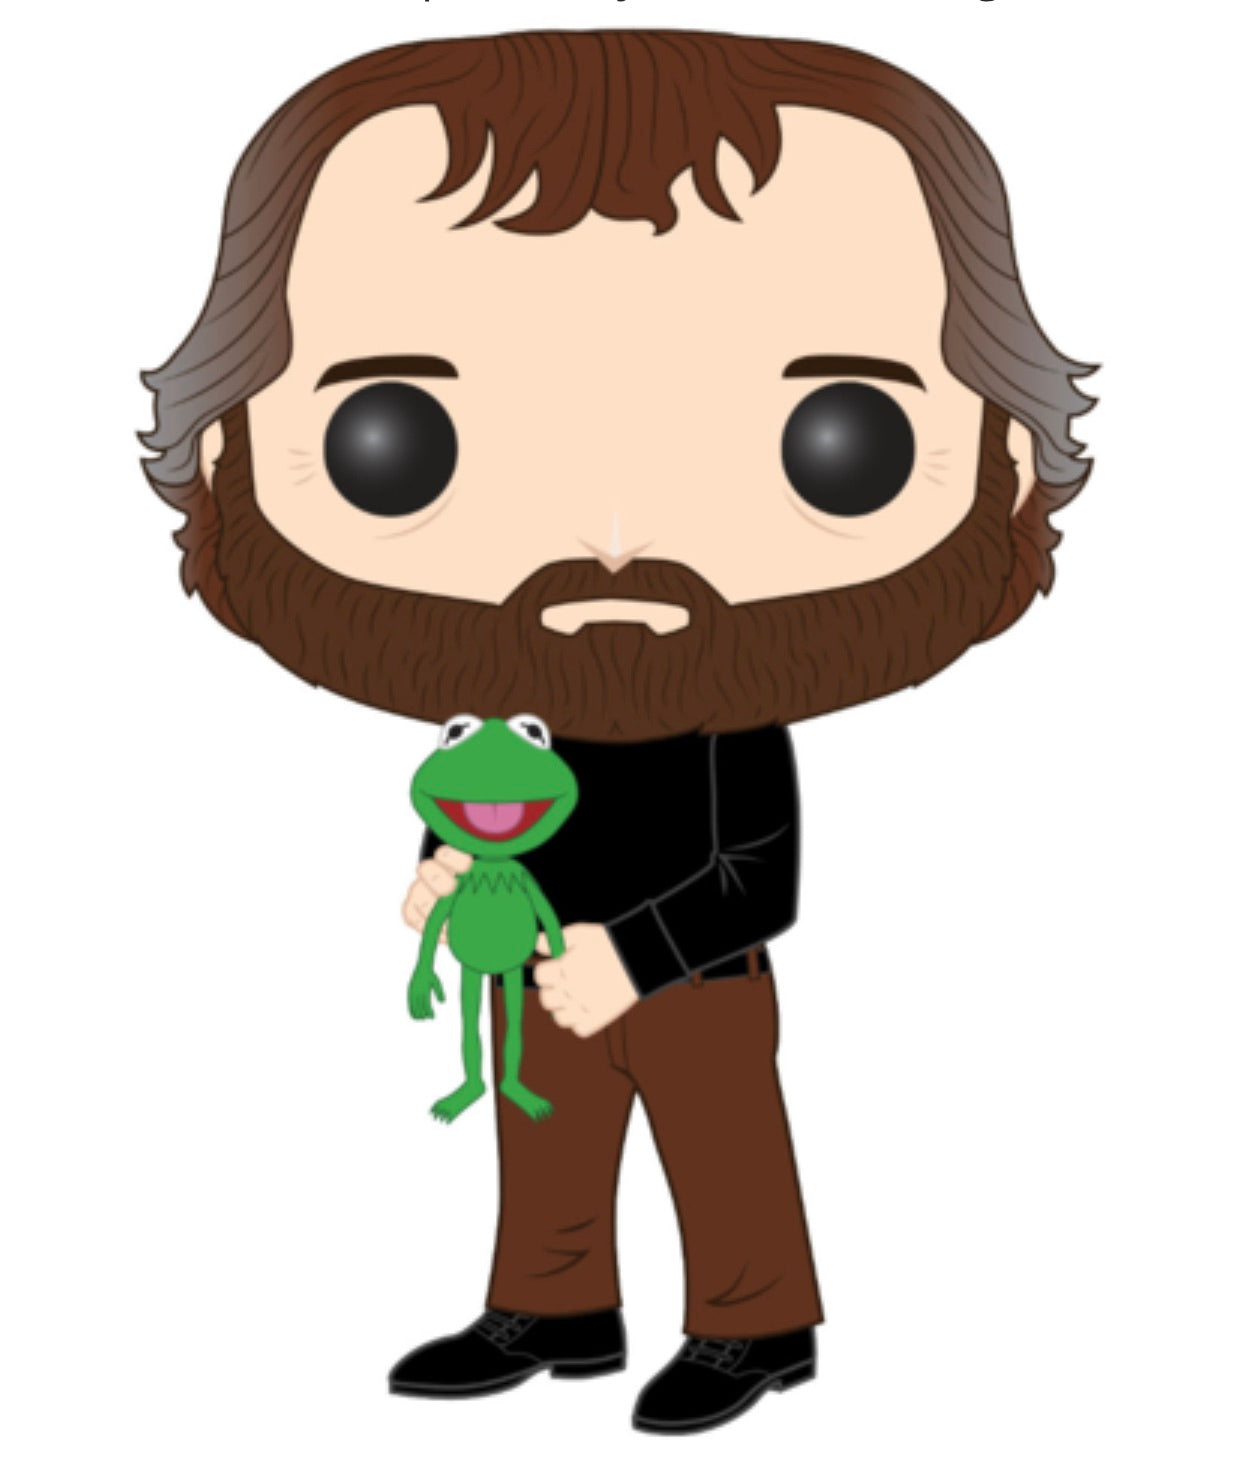 (Preorder) Pop! Icons: Jim Henson